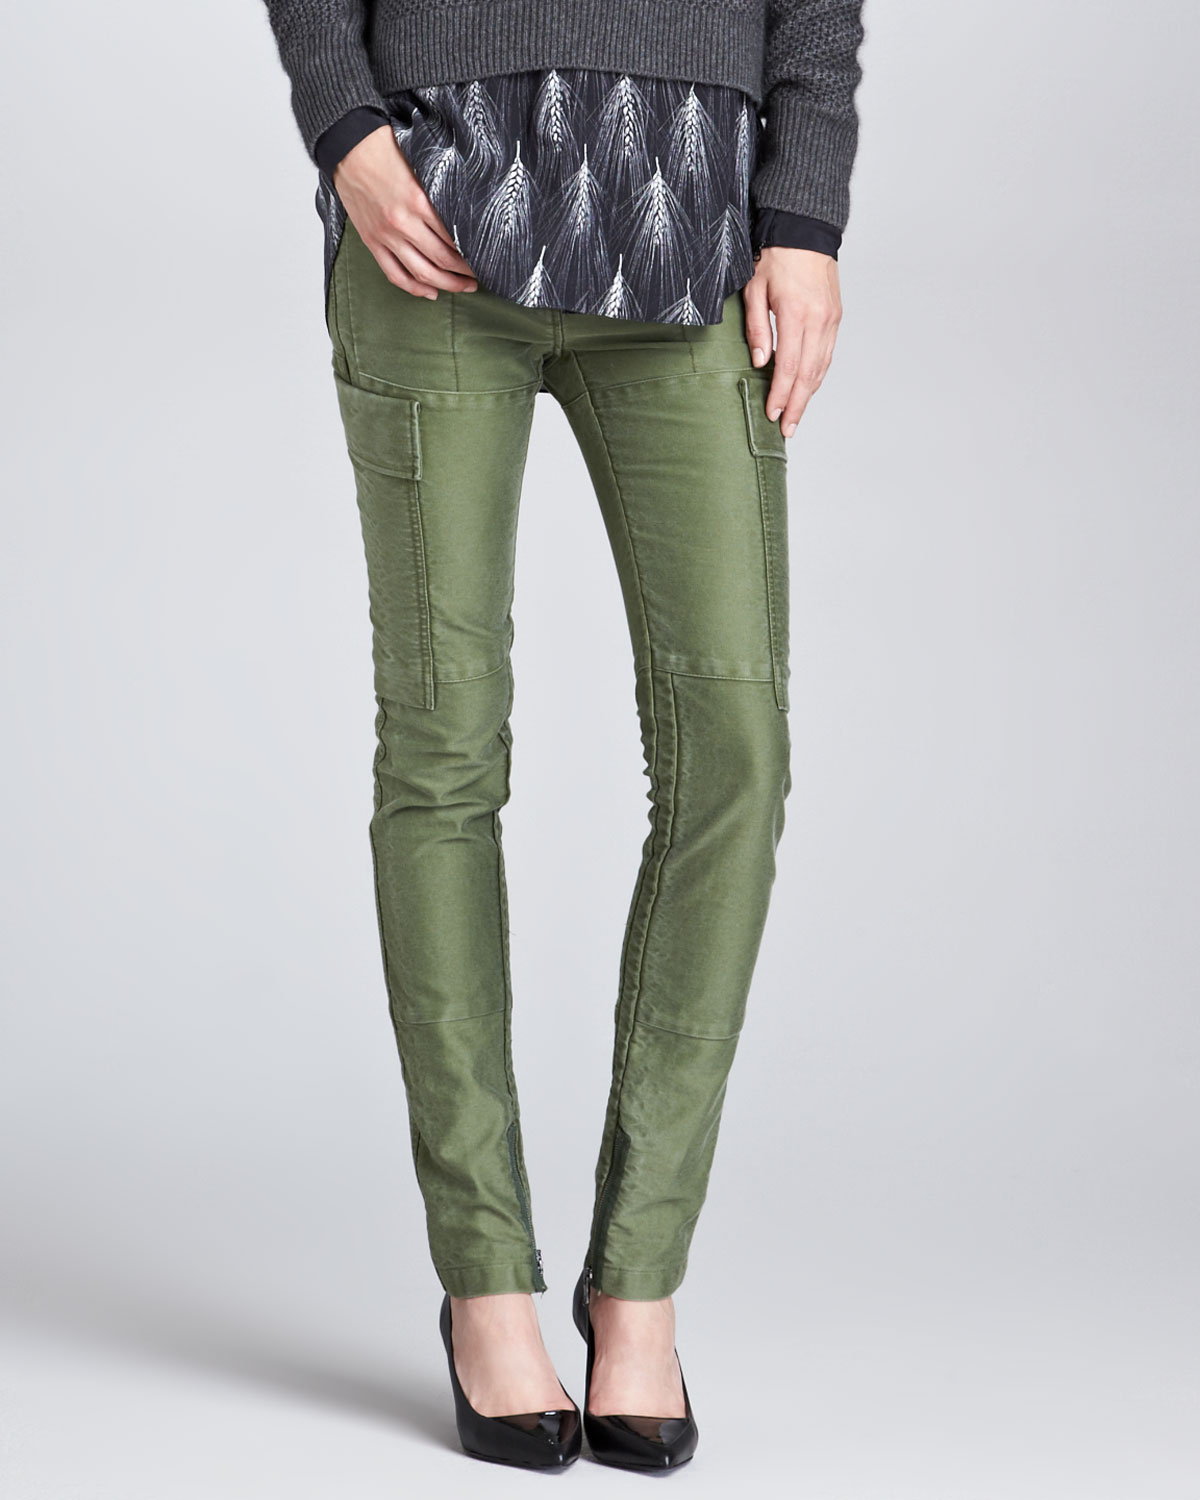 Womens Skinny Patchwork Cargo Pants, Army Green   3.1 Phillip Lim   Army green